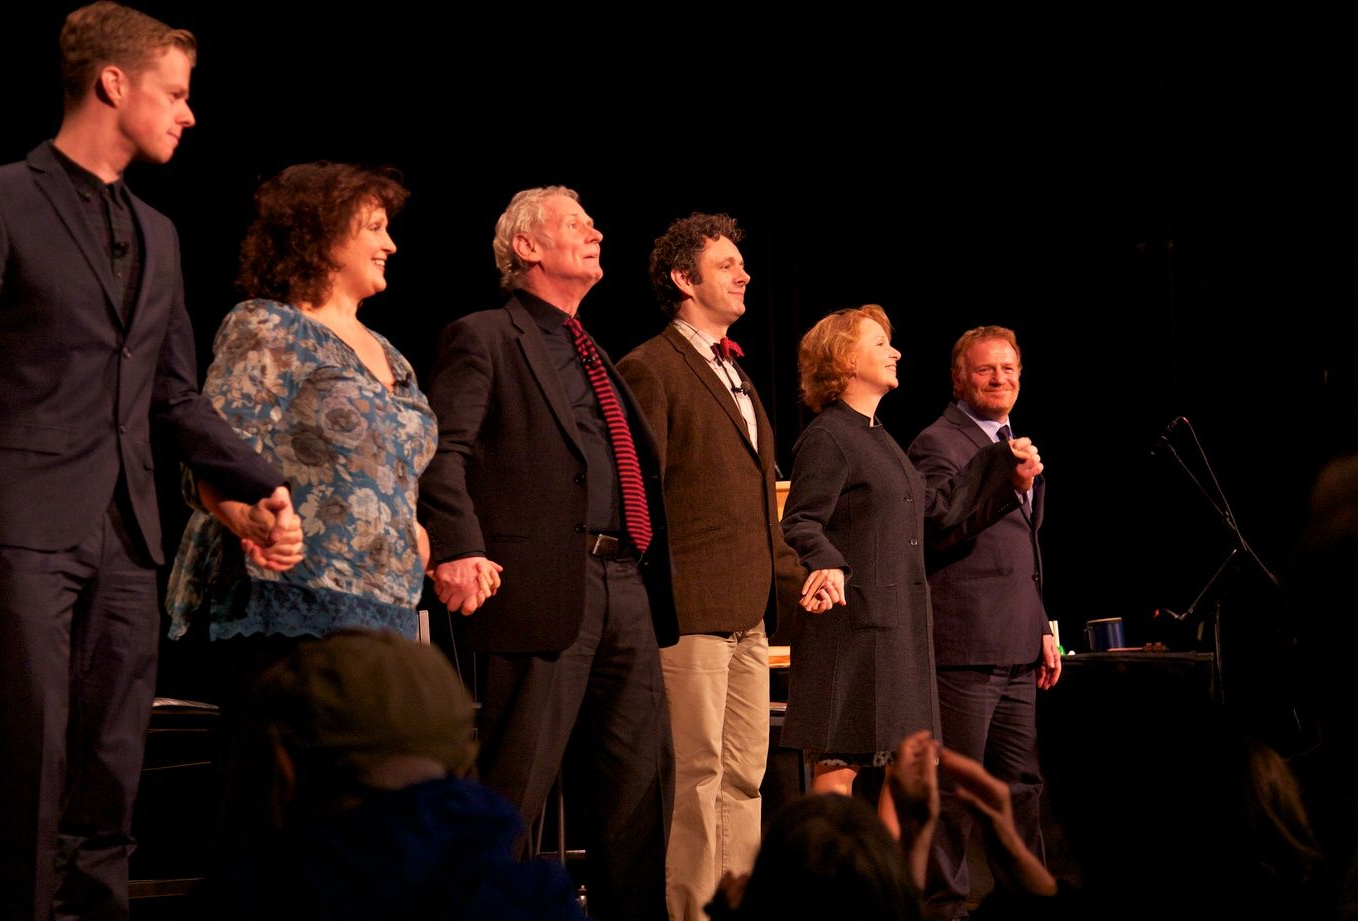 RT @92Y: Tune in Sunday (8pm ET) for @WNYC's encore broadcast of #DylanThomas' Under Milk Wood at @92Y: http://t.co/O8qp9zgpi4 http://t.co/…